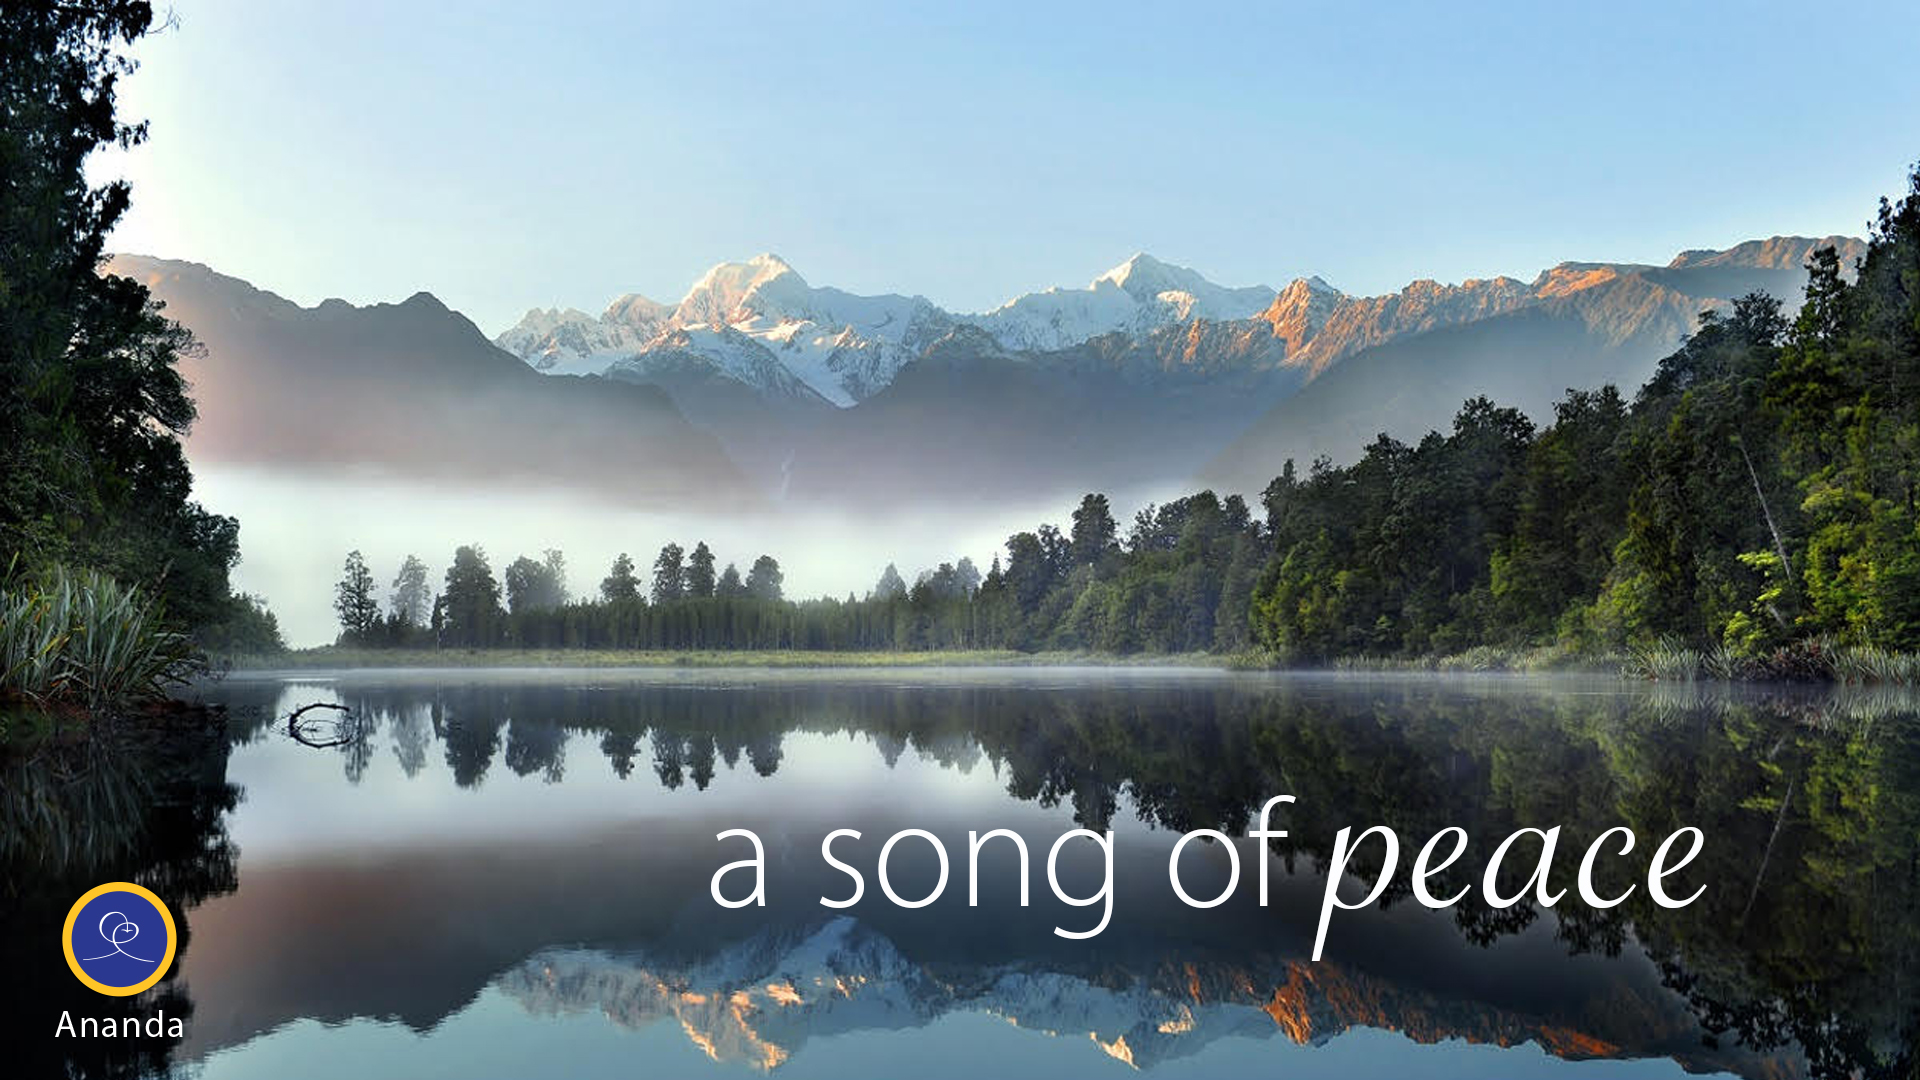 A song of peace by Swami Kriyananda